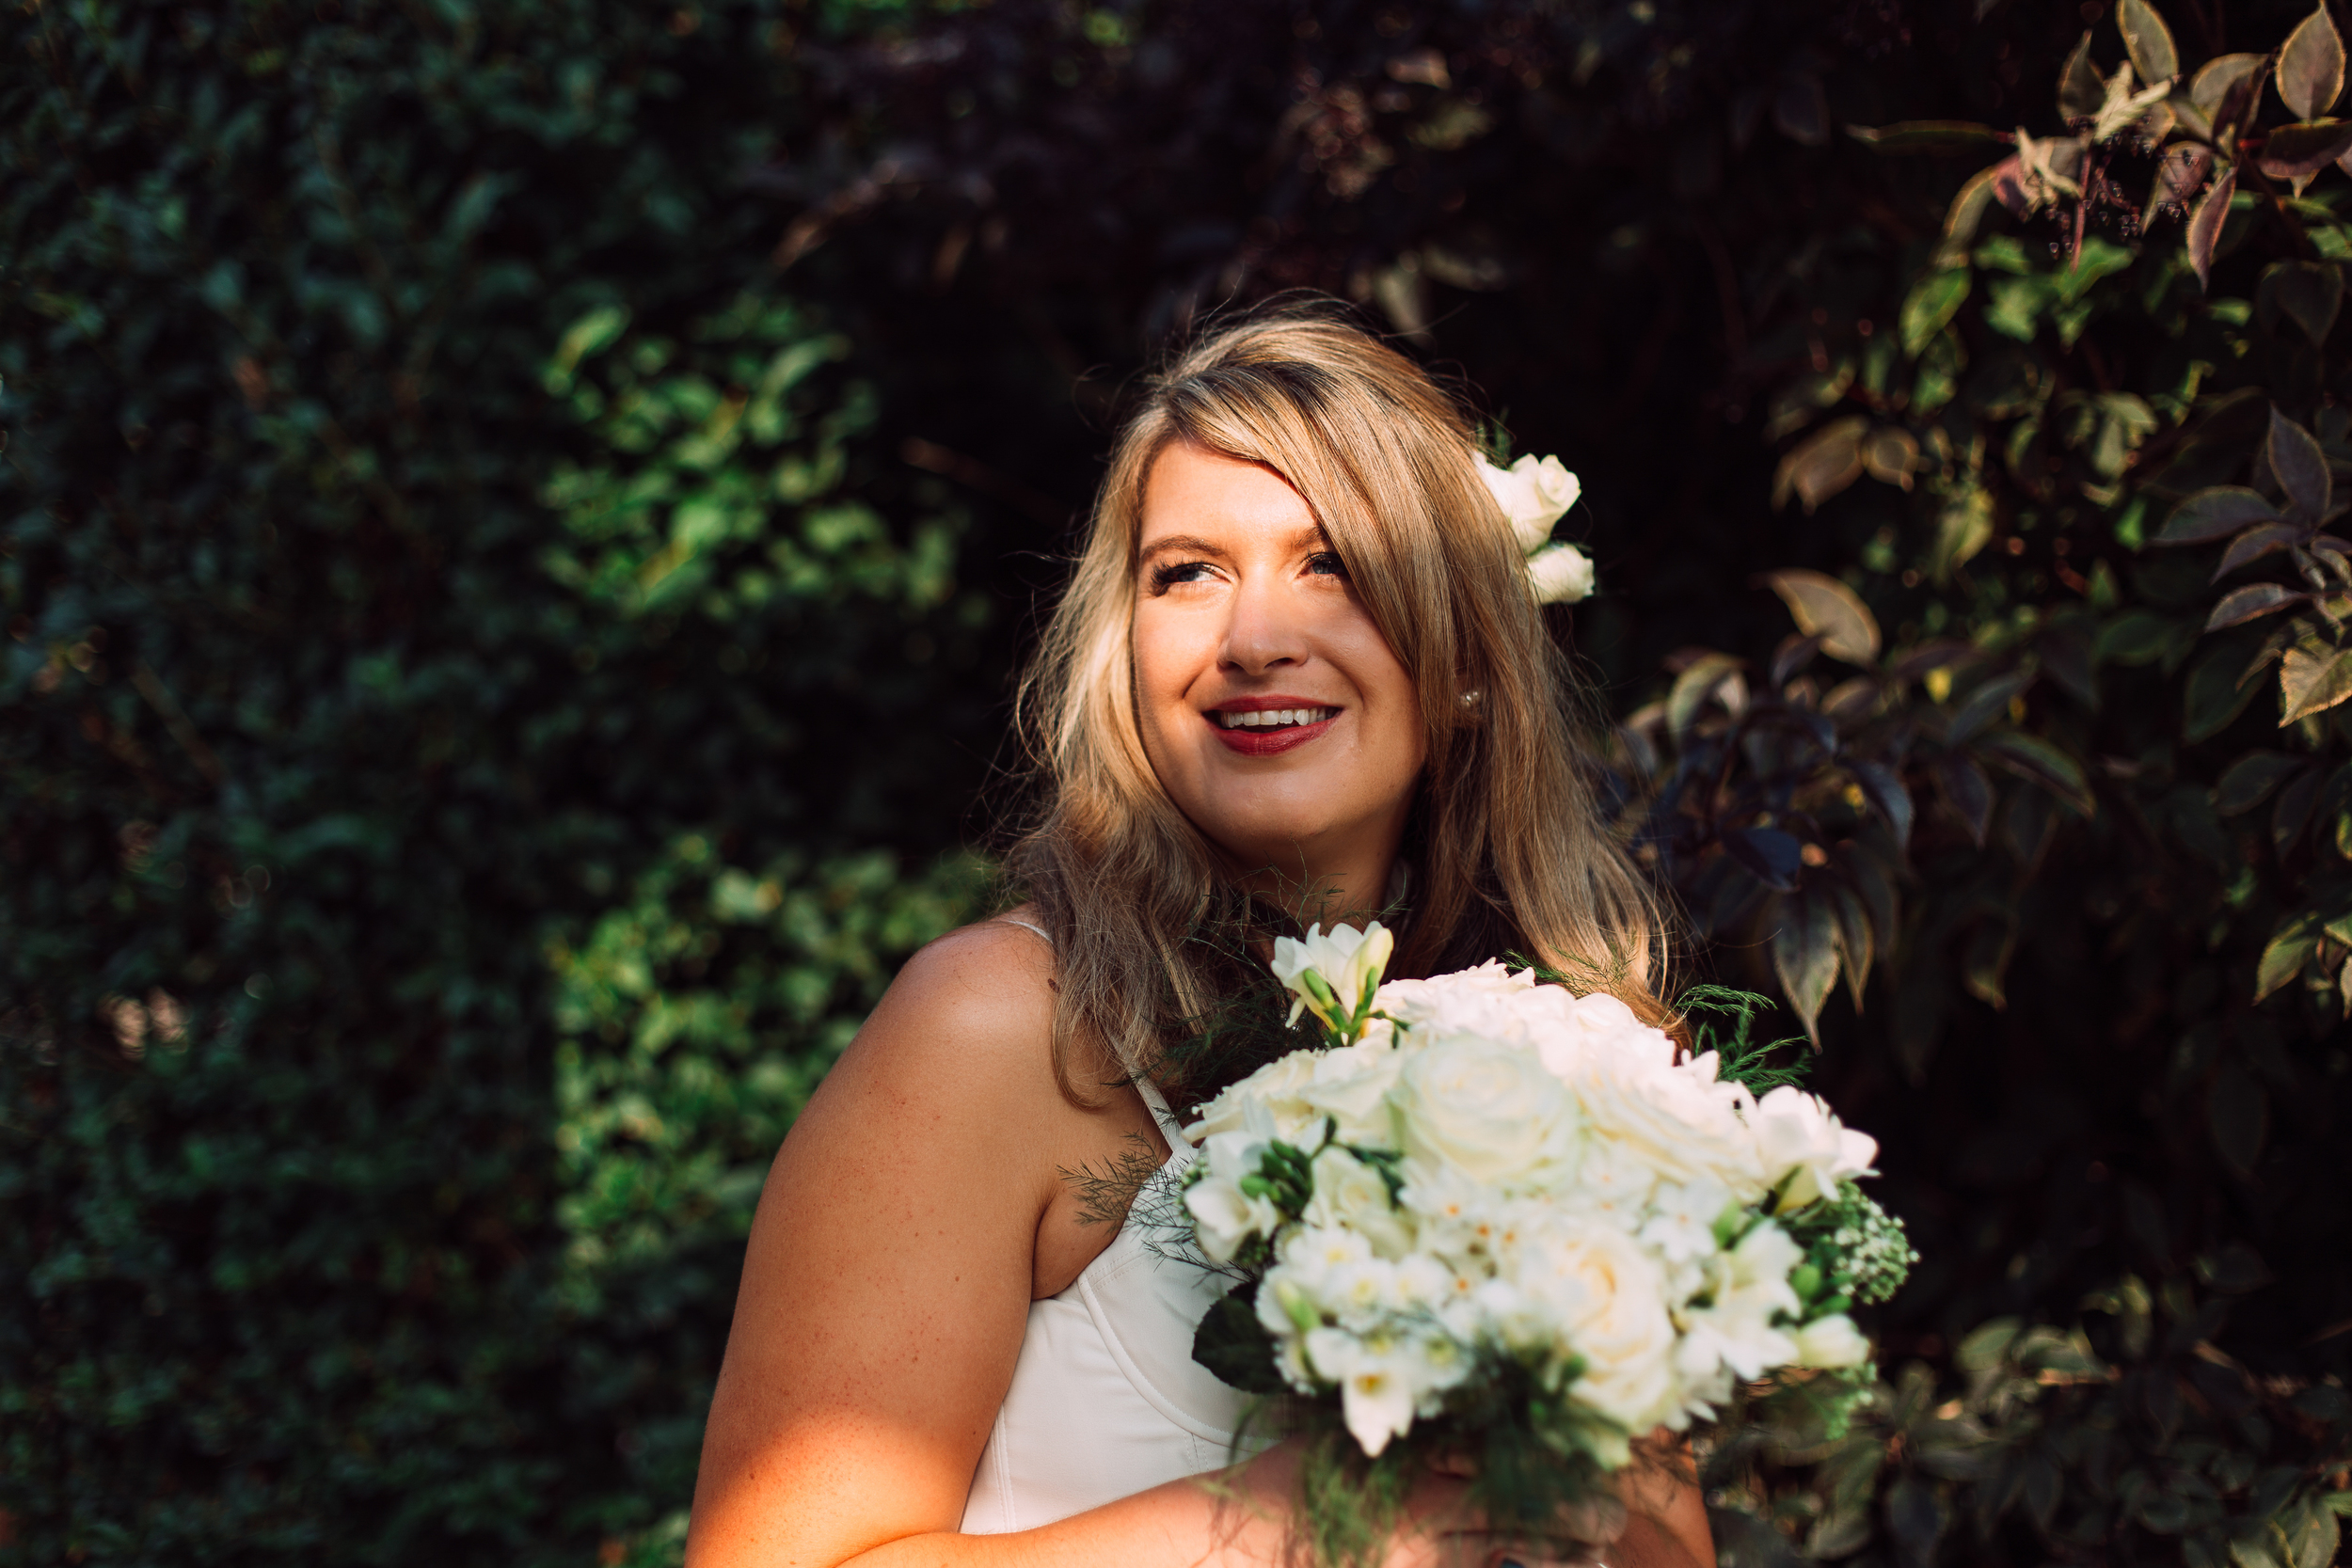 Joanna Nicole Photography Surrey Wedding Photographer London Creative Alternative Weddings (89 of 100).jpg